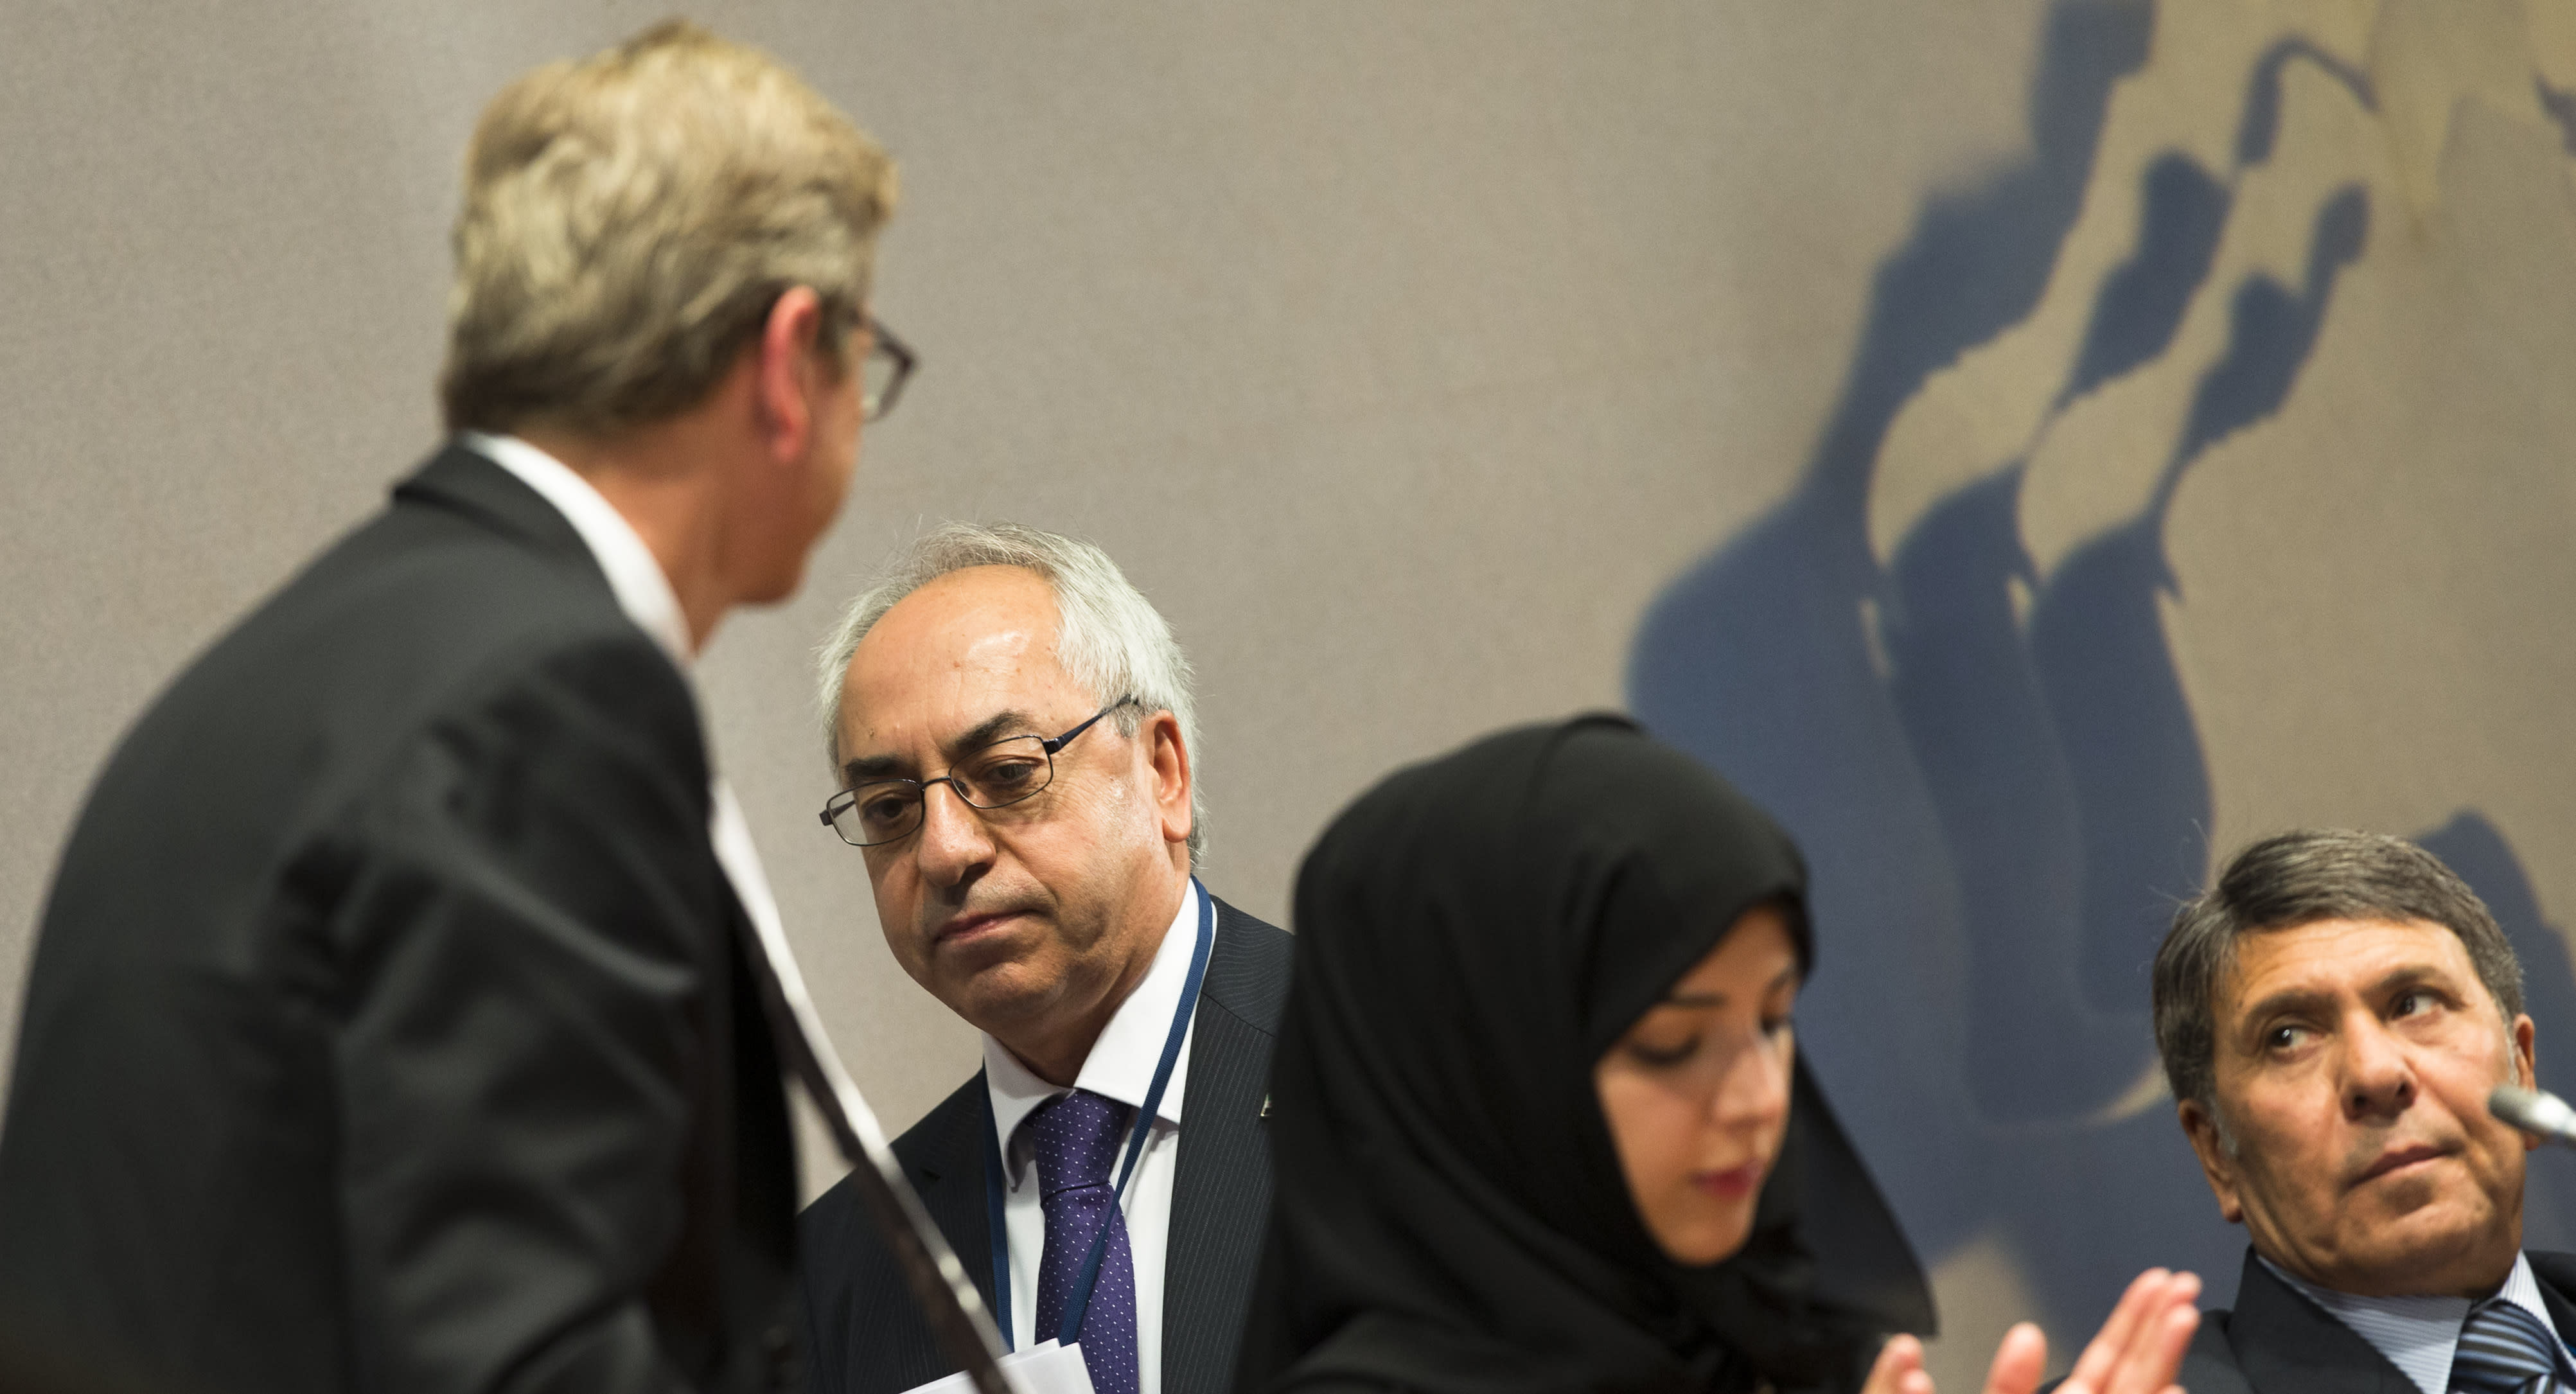 The President of the Syrian National Council Abdulbaset Sieda, second left, receives applause from German Foreign Minister Guido Westerwelle, left, Minister of State of the United Arab Emirates Reem al-Hashimi, second right, and from former Syrian Vice Oil Minister Abdo Hussameddin, right, after his speech to a gathering of Syrian opposition representatives and diplomats hosted at the Germany foreign ministry in Berlin, Tuesday, Sept. 4, 2012. Germany's foreign minister is pressing disparate Syrian opposition groups to unite in preparation for the collapse of the Bashar Assad regime. Berlin hosted a gathering of Syrian opposition representatives and diplomats Tuesday to address how to prevent basic services and infrastructure collapsing, and how to revive the economy, once Assad falls. (AP Photo/Markus Schreiber)